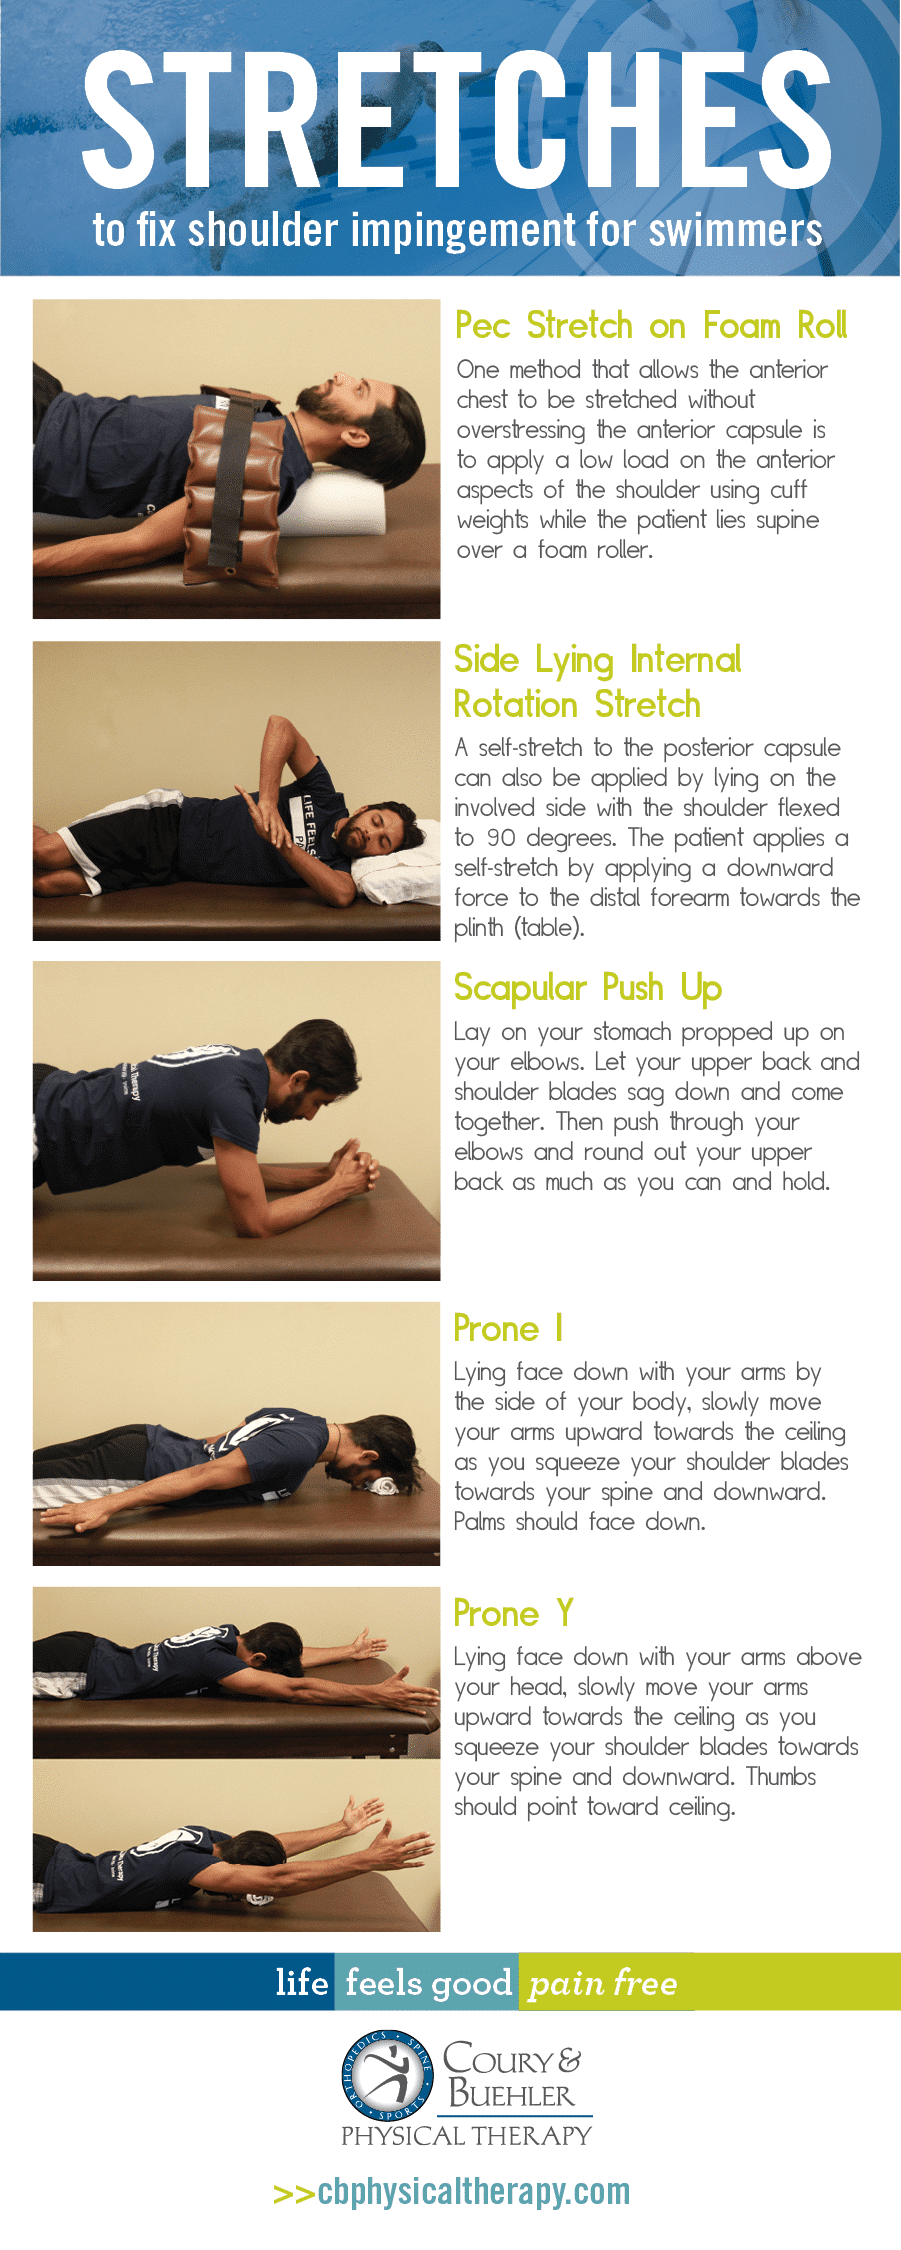 Stretches for Shoulder Impingement - Swimmers